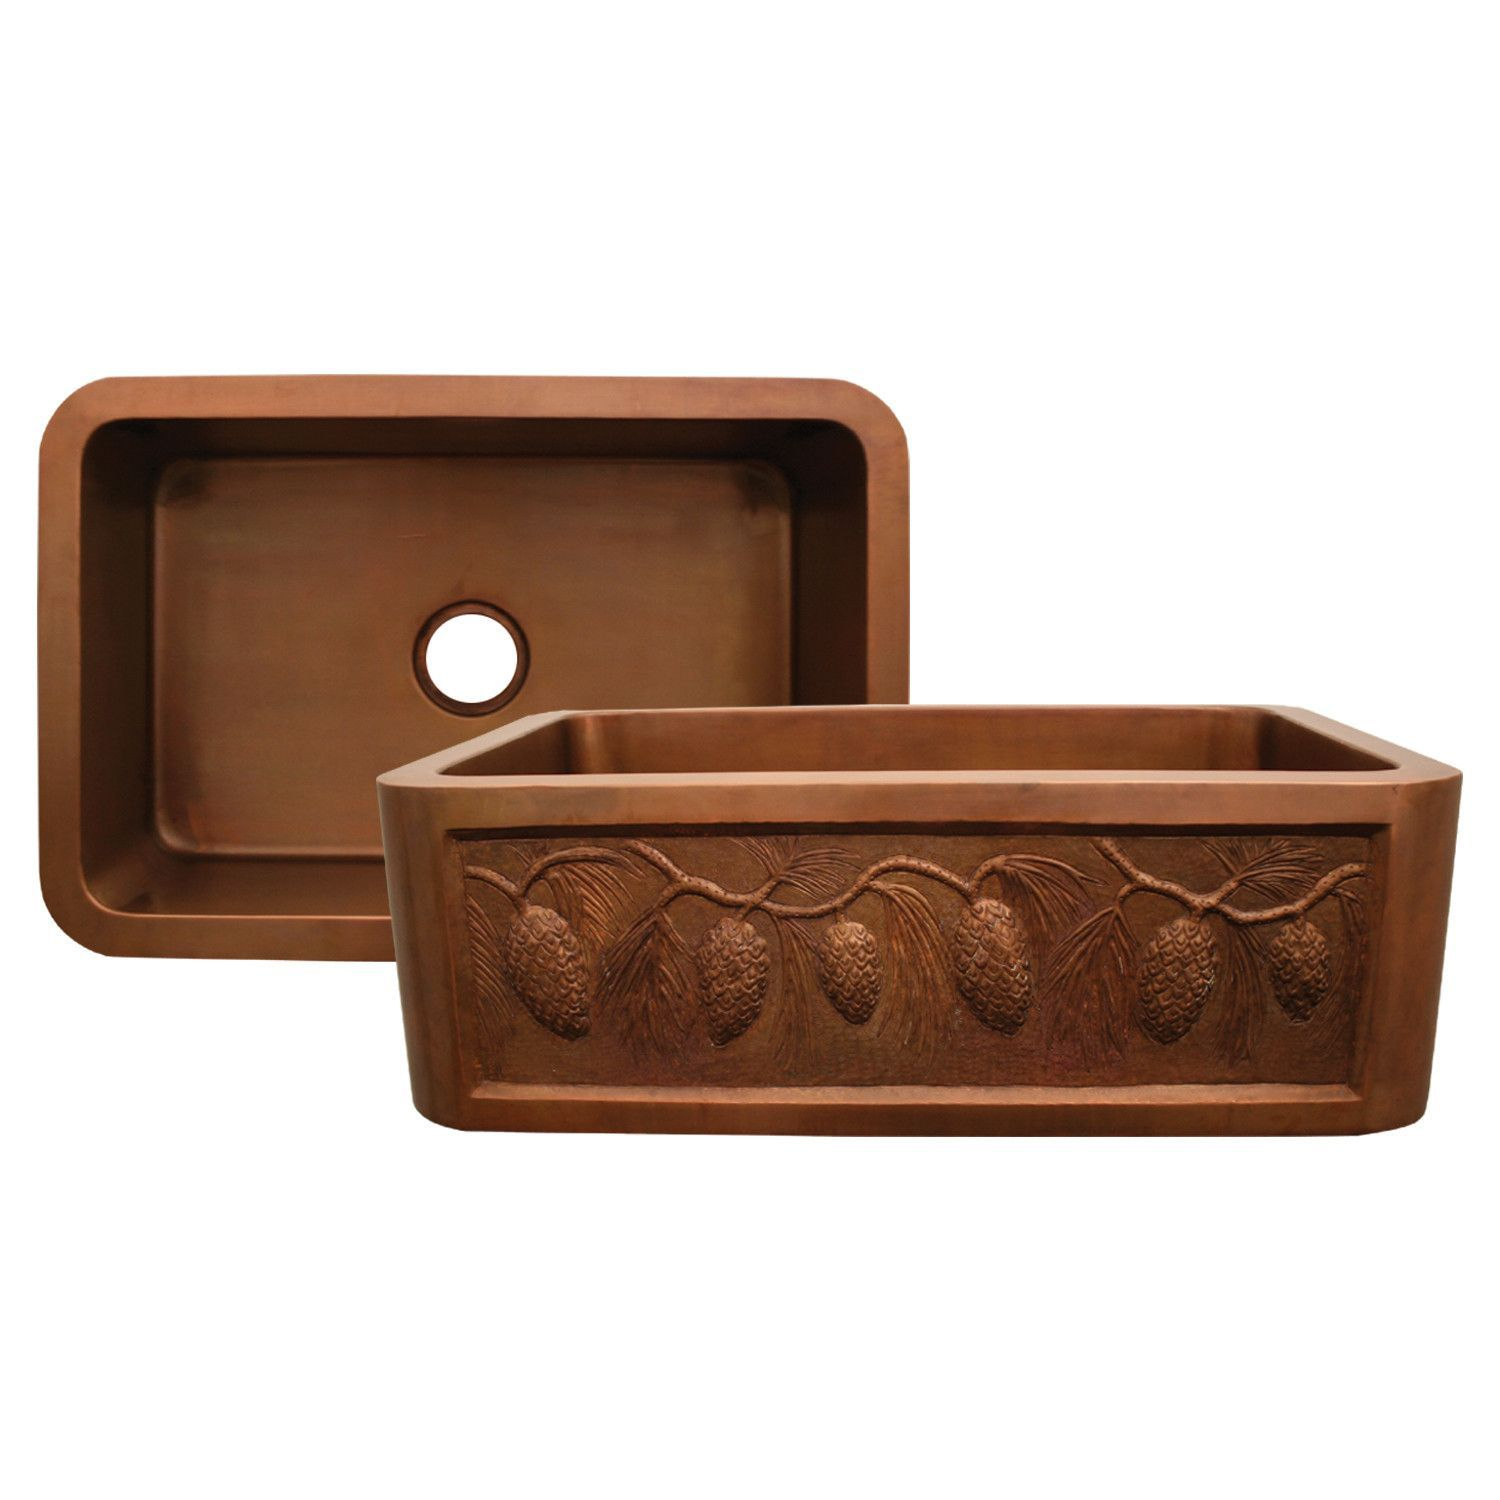 Belle Foret Farmhouse Sink Copperhaus Rectangular Undermount Sink With A Pine Cone Design